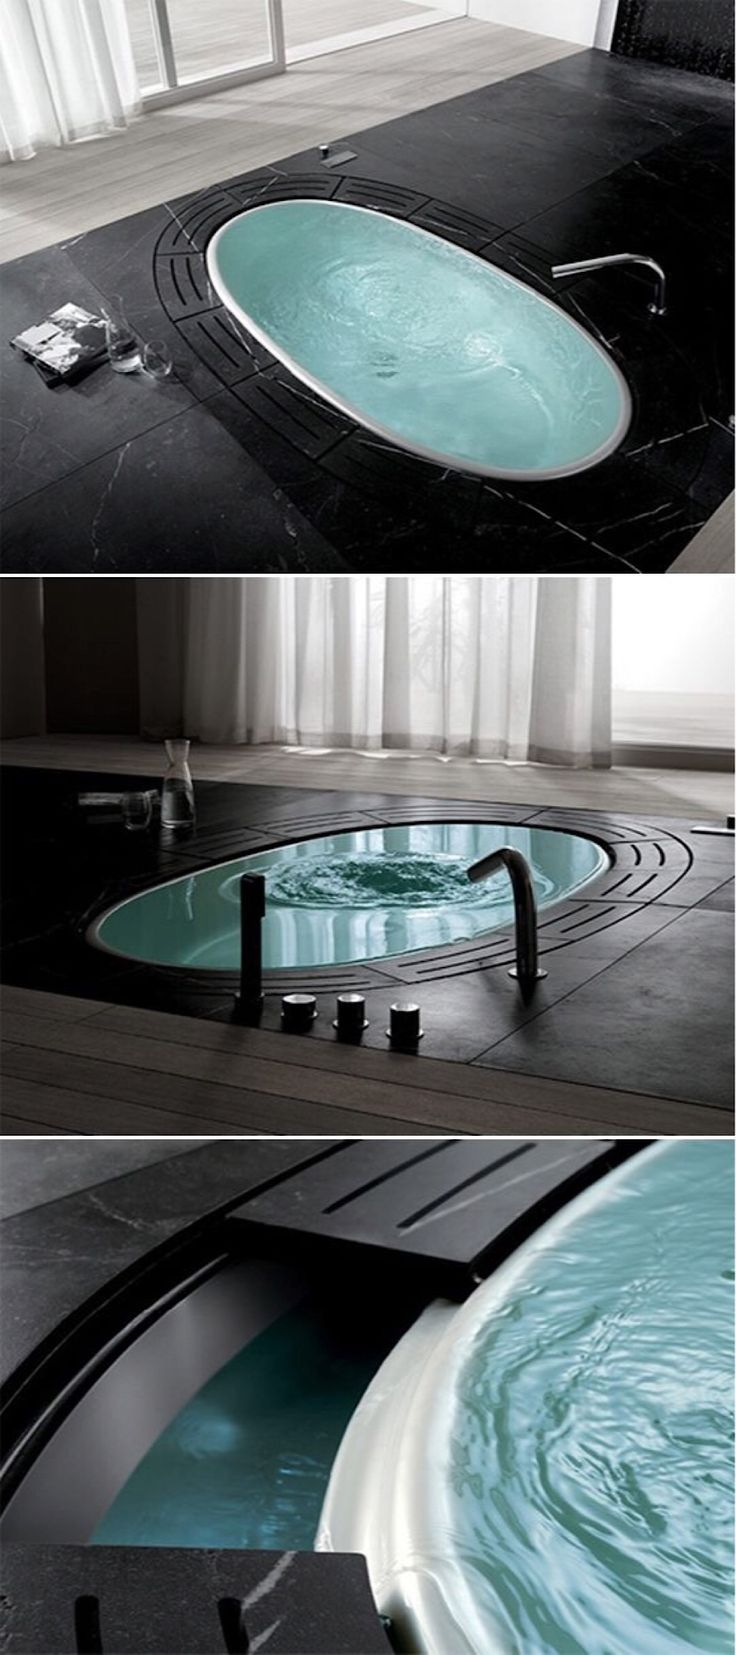 Sorgente is a multi-sensory experience, which you can share. You can use it like a traditional bath or always full and ready for use, just like a swimming pool. It is fitted with an automatic water filling system and the covering can be customised, even with materials which are not included in the catalogue. Designed […]